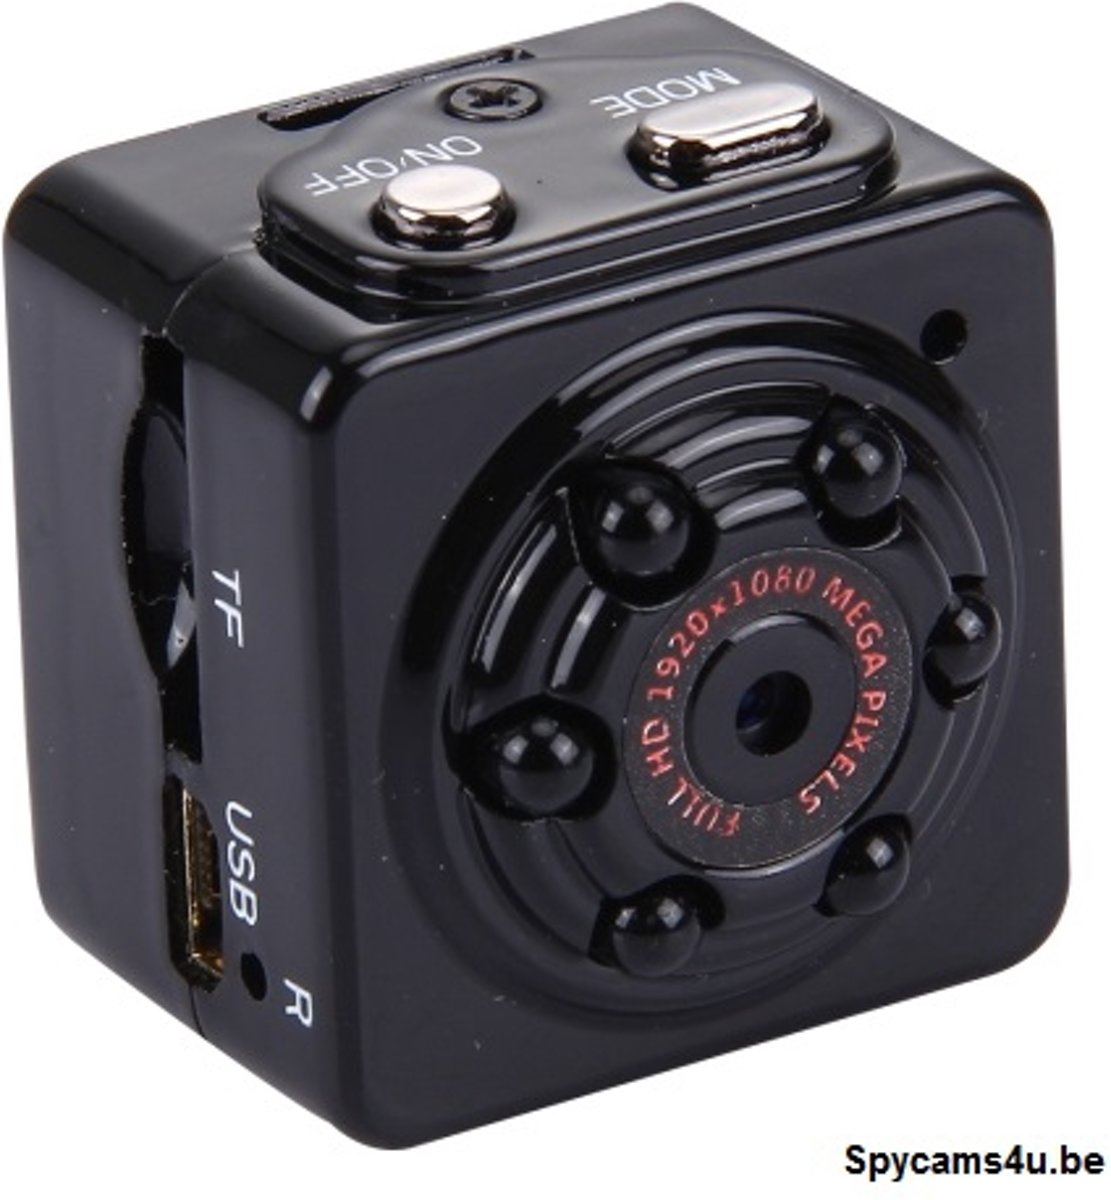 Camera Interieur Verborgen Knoop Camera S Hd 1080p Mini Camera Spy Camera